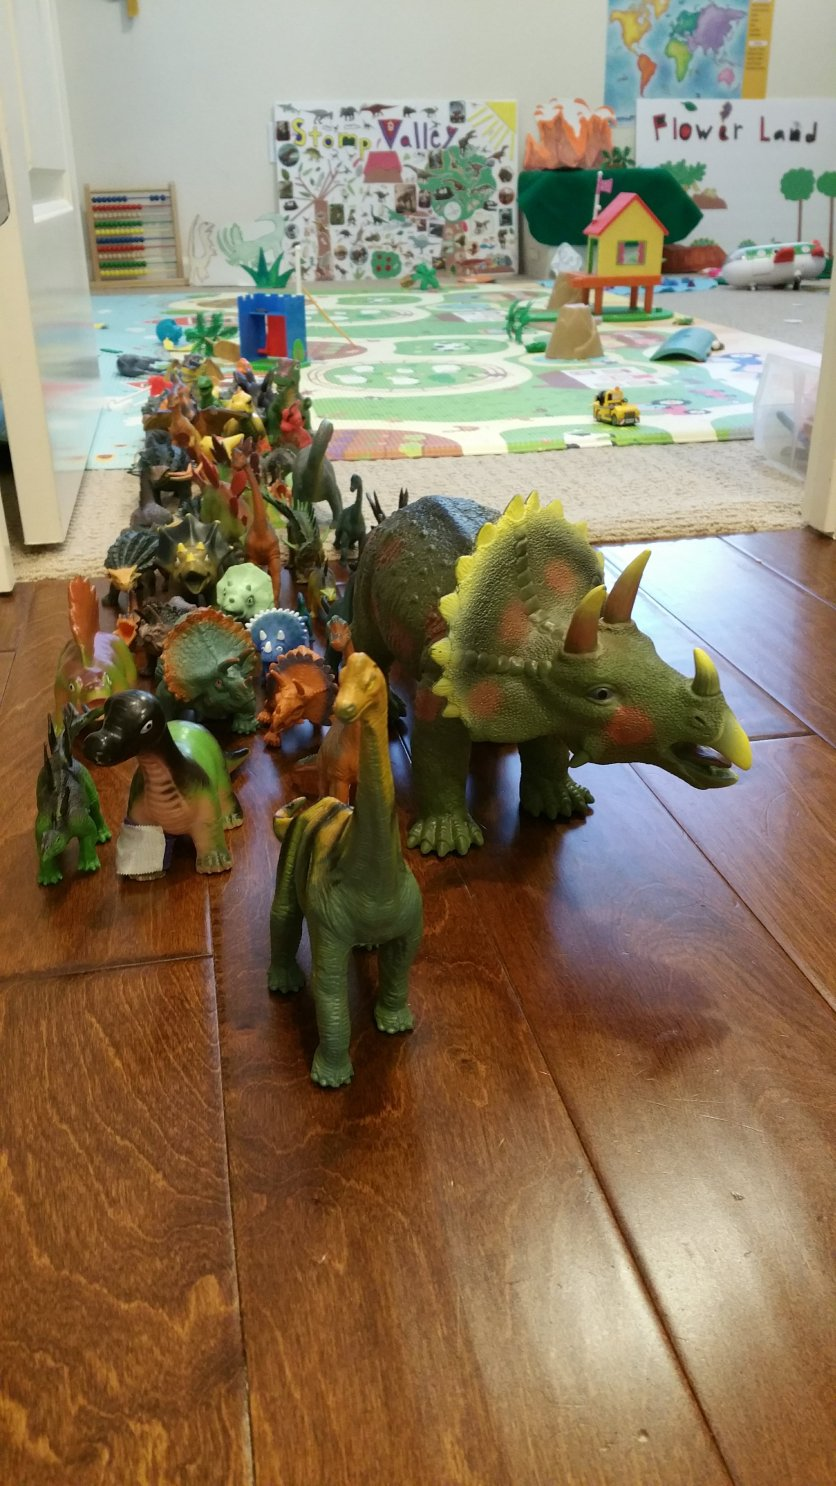 According to Elliot, the herd of herbivores are migrating to a new city.